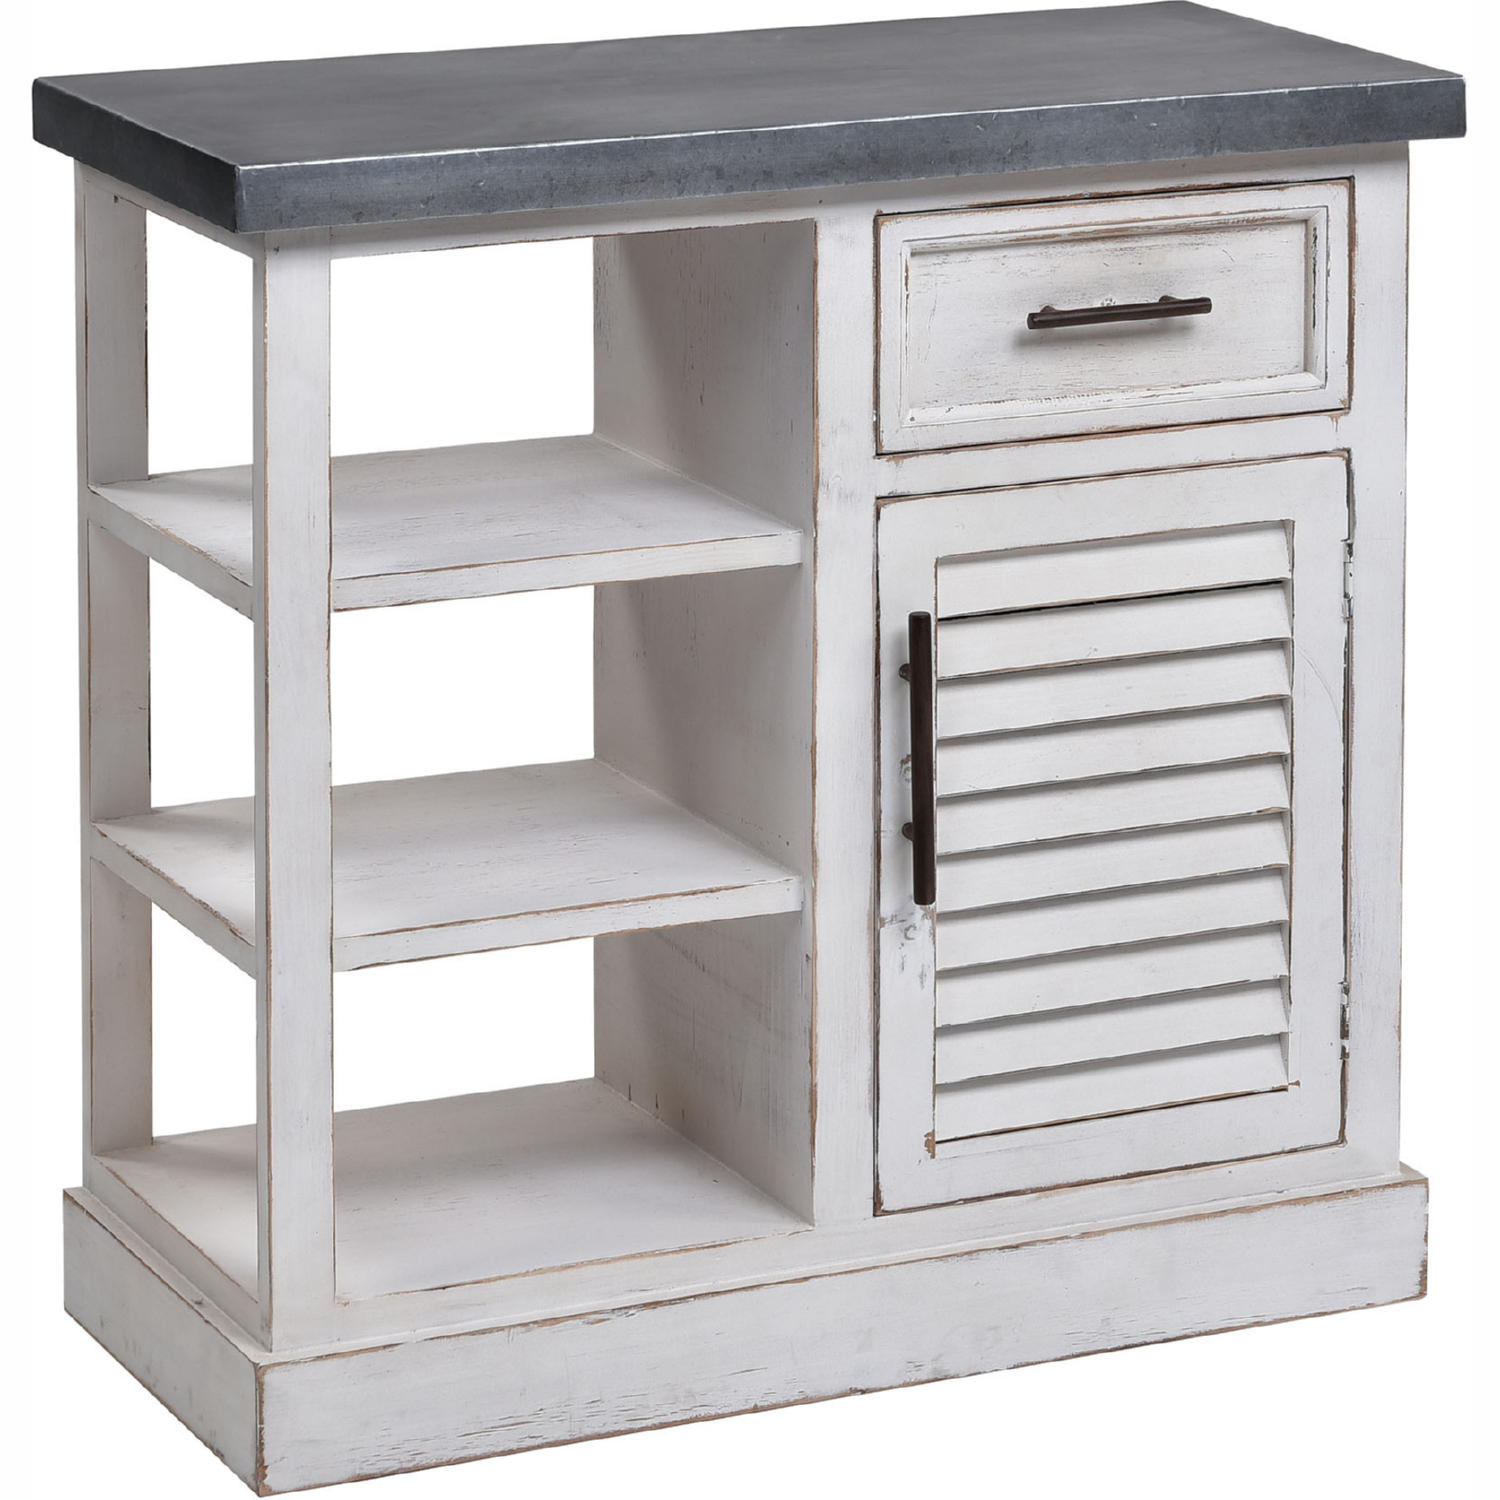 Ballintoy 31 Cabinet In Antique White Wood Galvanized Steel By Elk Home